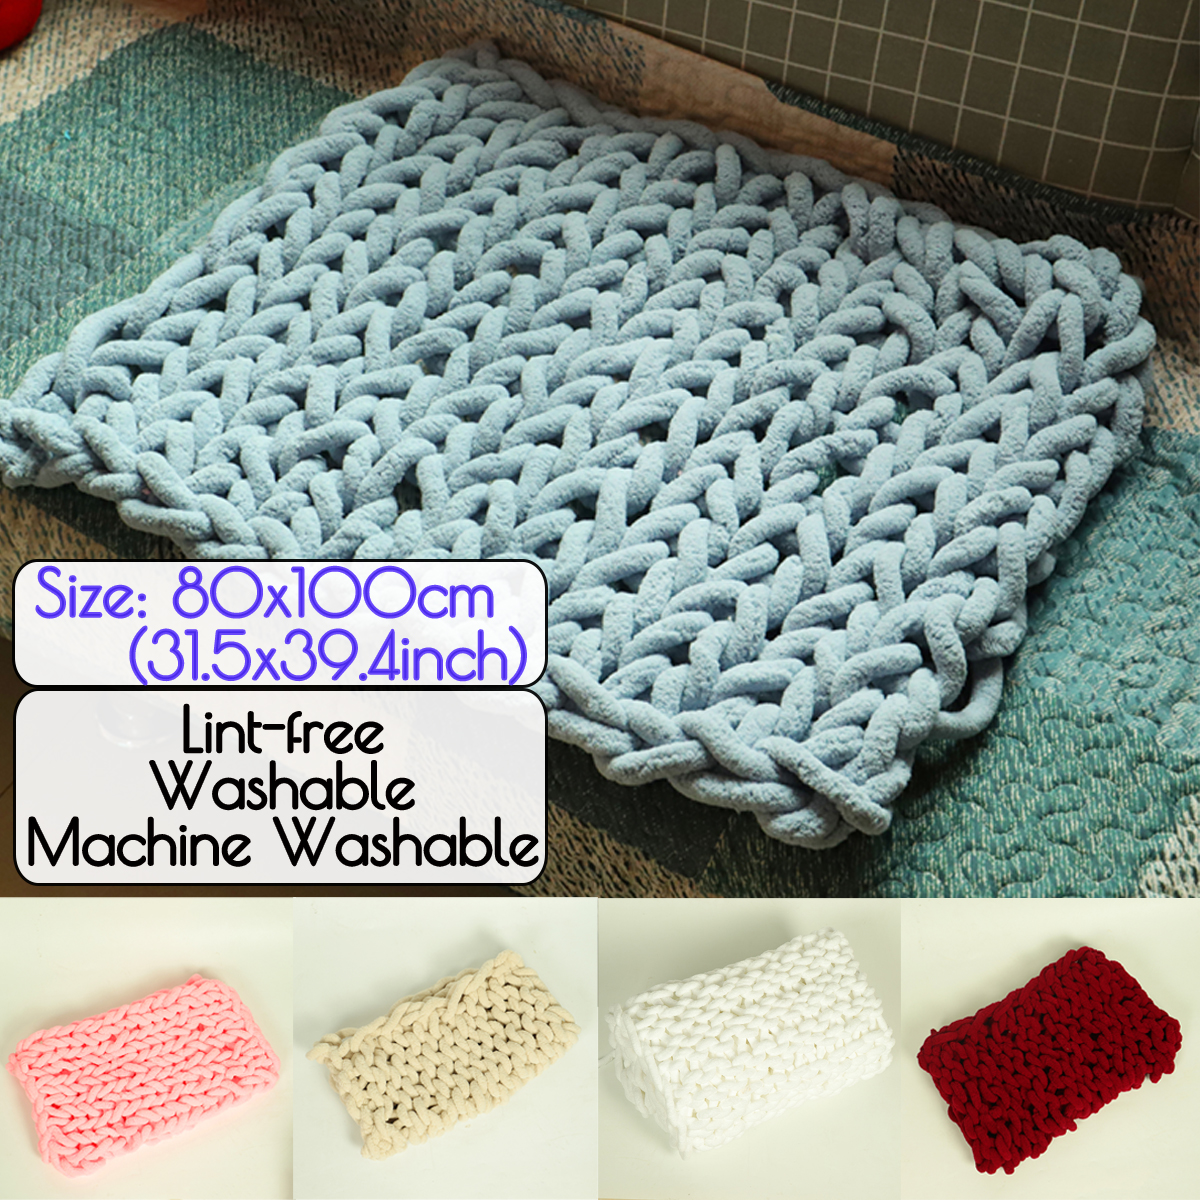 80 x 100cm Handmade Knitted Blanket Cotton Soft Washable Lint-free Throw Blankets